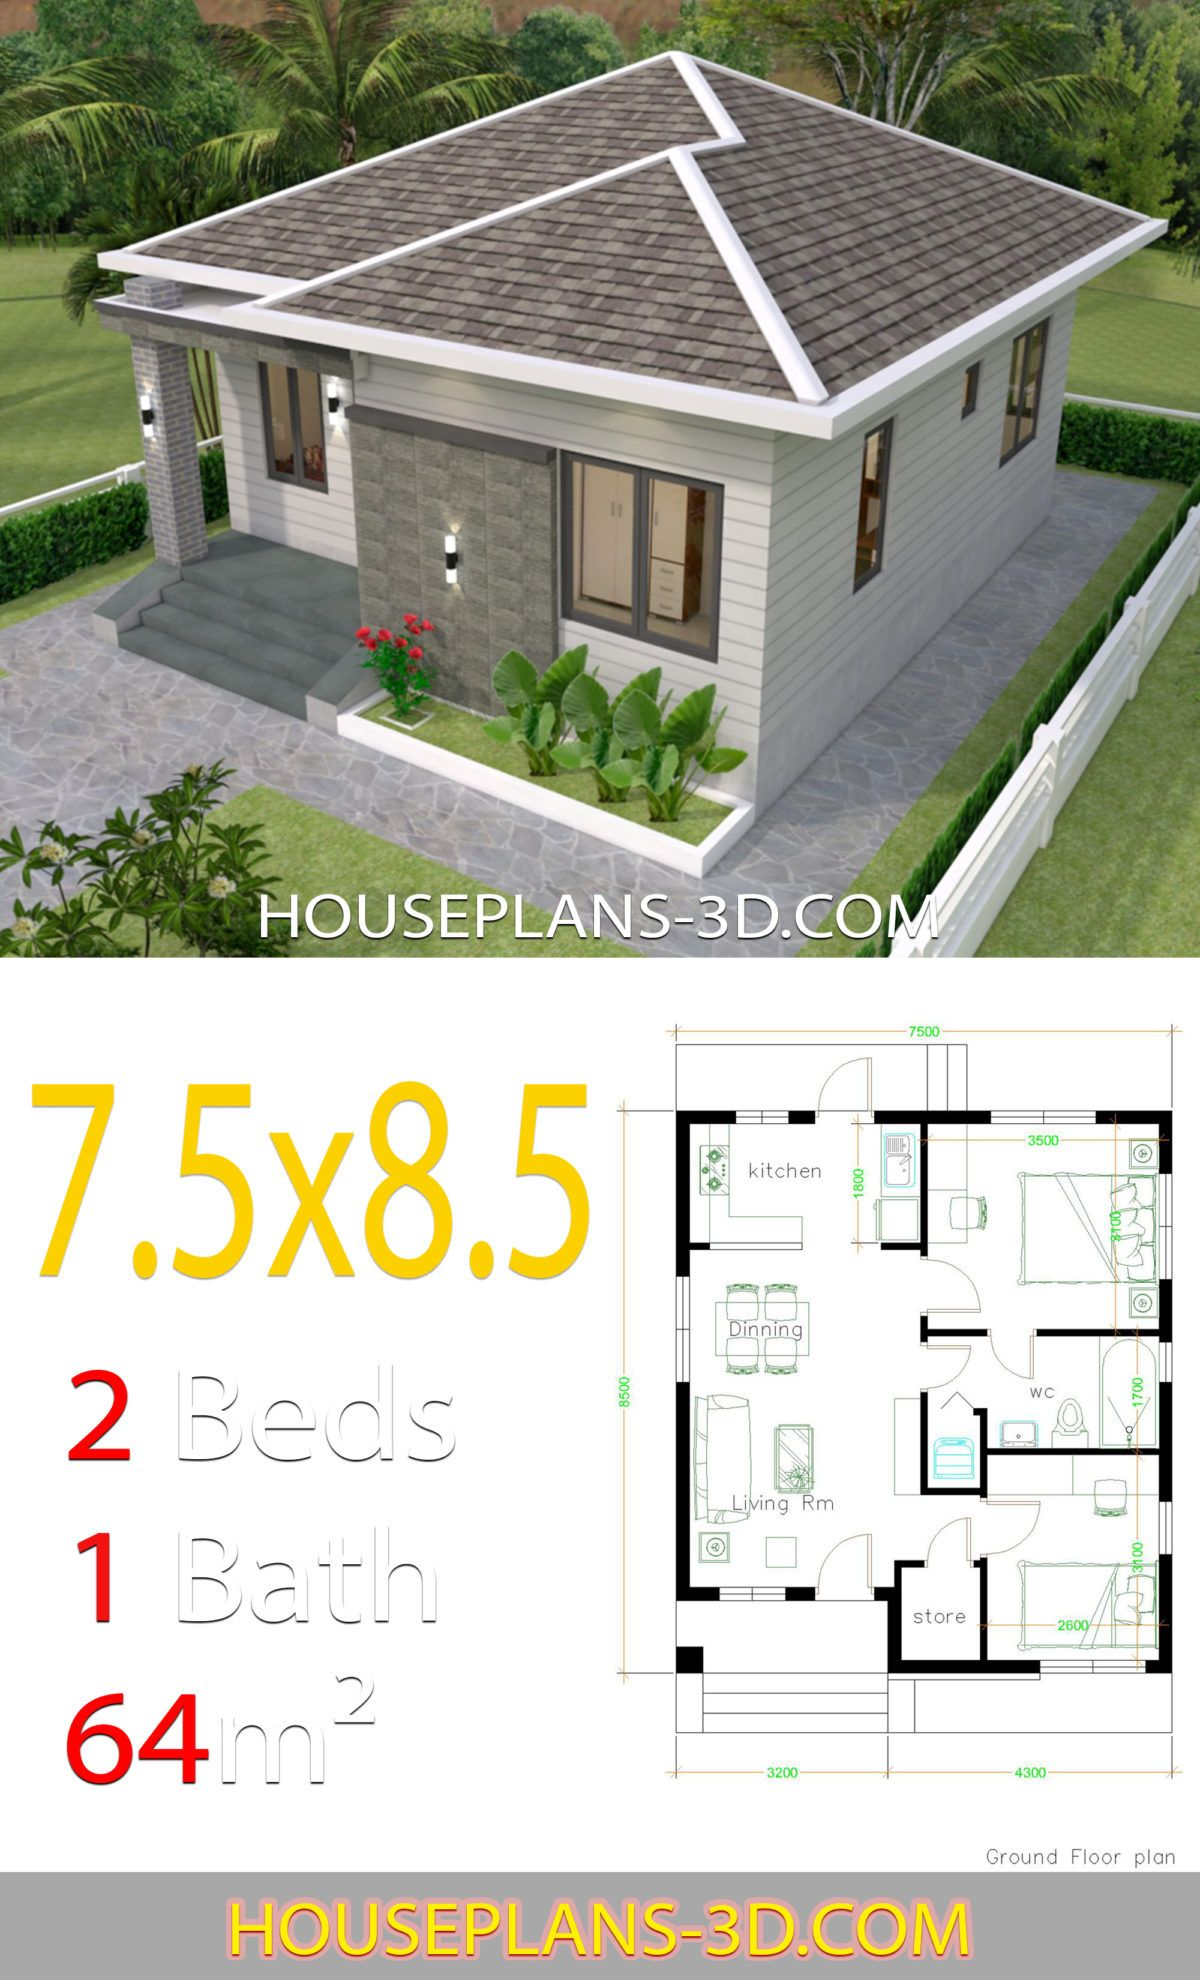 House Design 7 5x8 5 With 2 Bedrooms House Plans 3d In 2020 Hotel Room Design Plan Small House Design Simple House Design